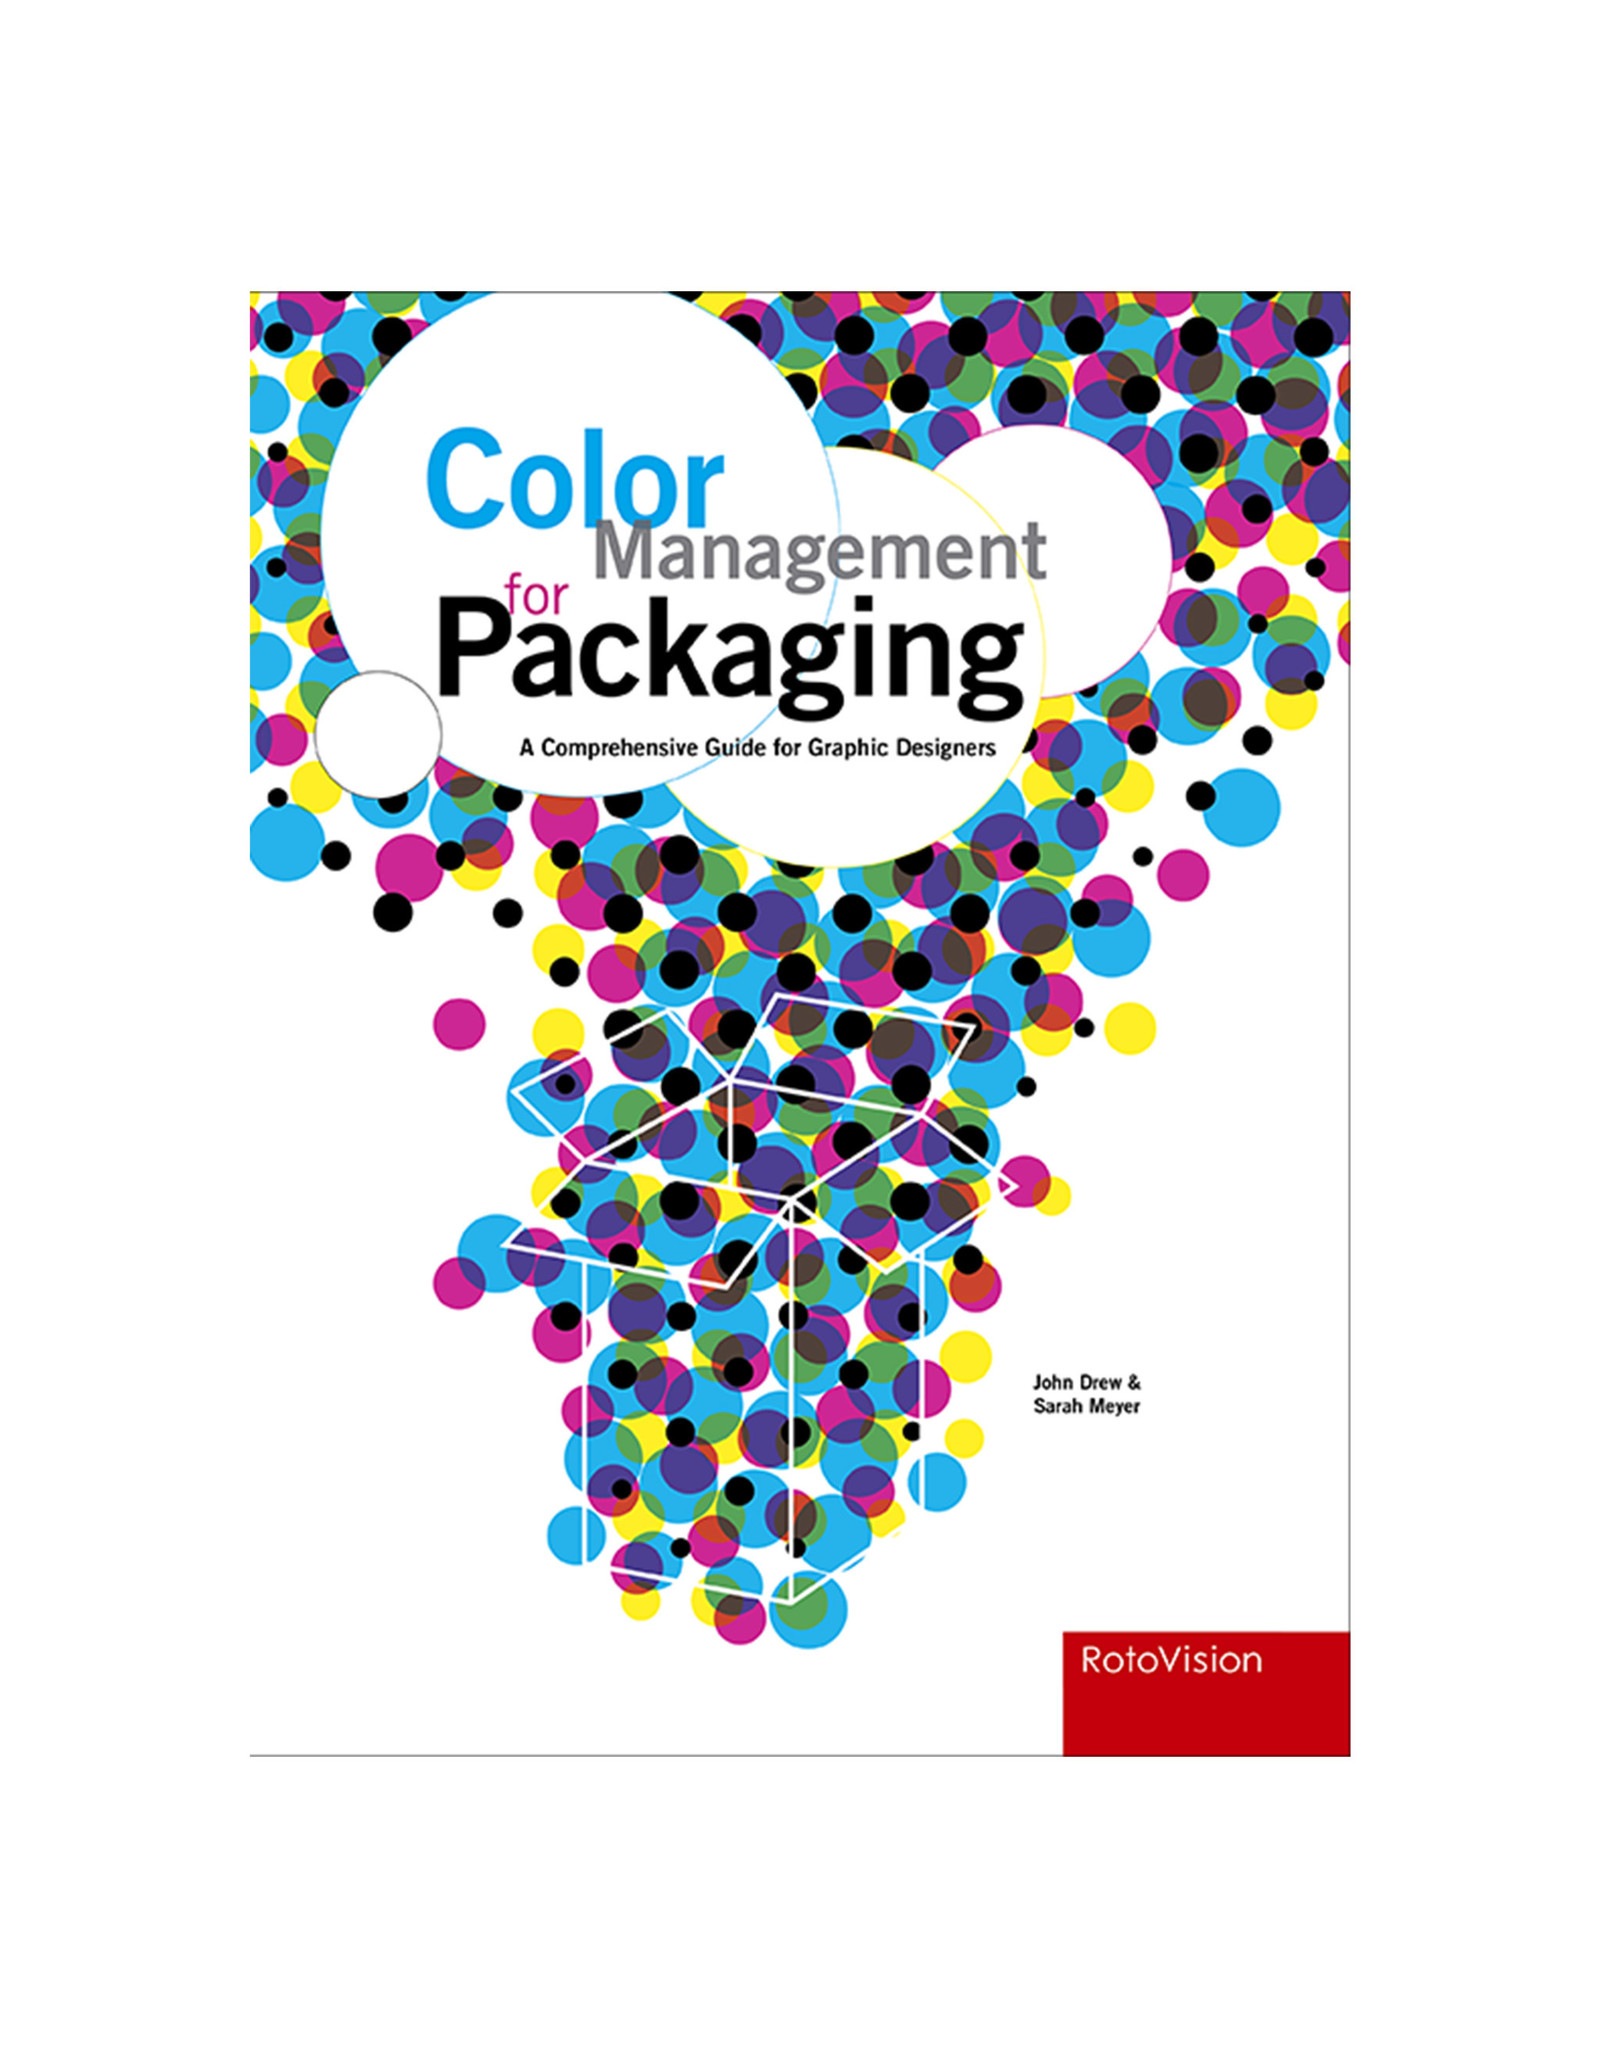 Color Management for Packaging: A Comprehensive Guide for Graphic Designers